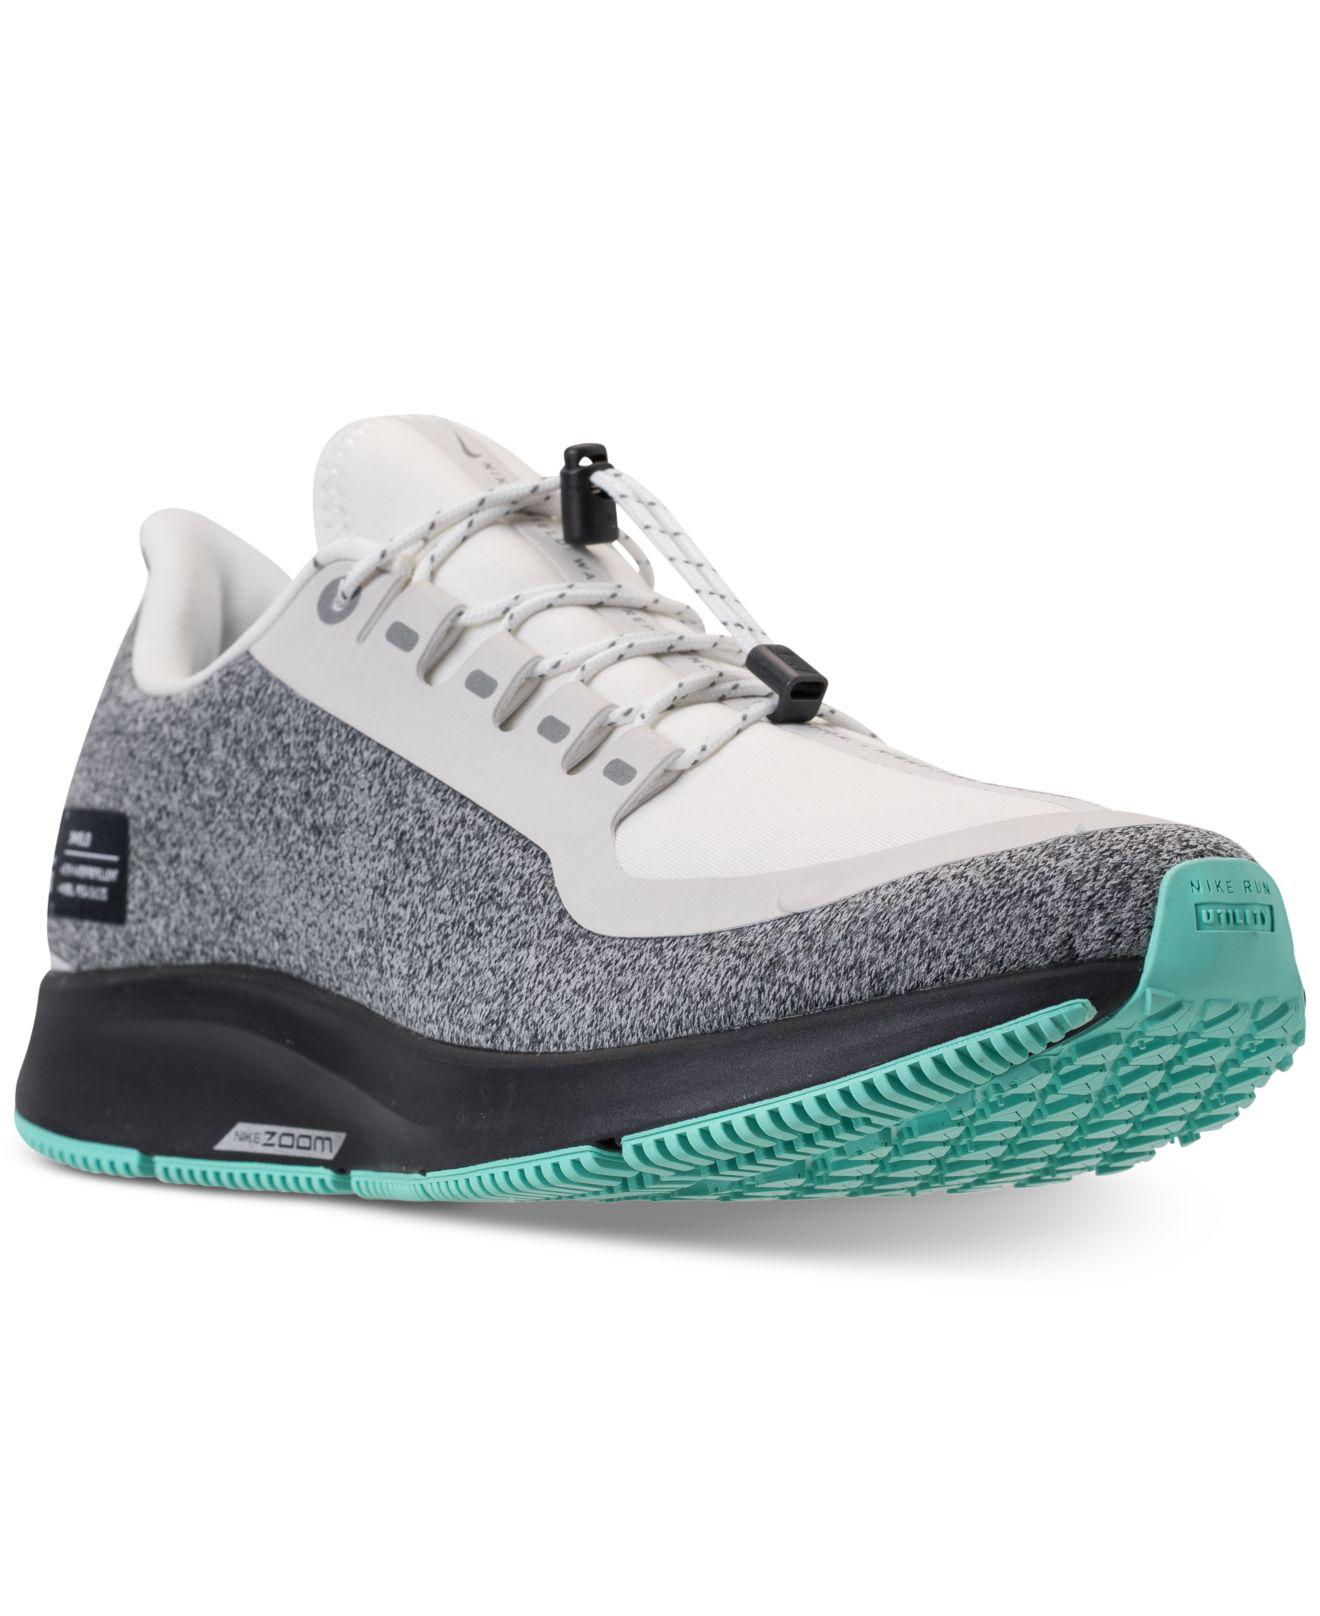 f7e4ed61d44f2 Lyst - Nike Air Zoom Pegasus 35 Shield Running Sneakers From Finish Line